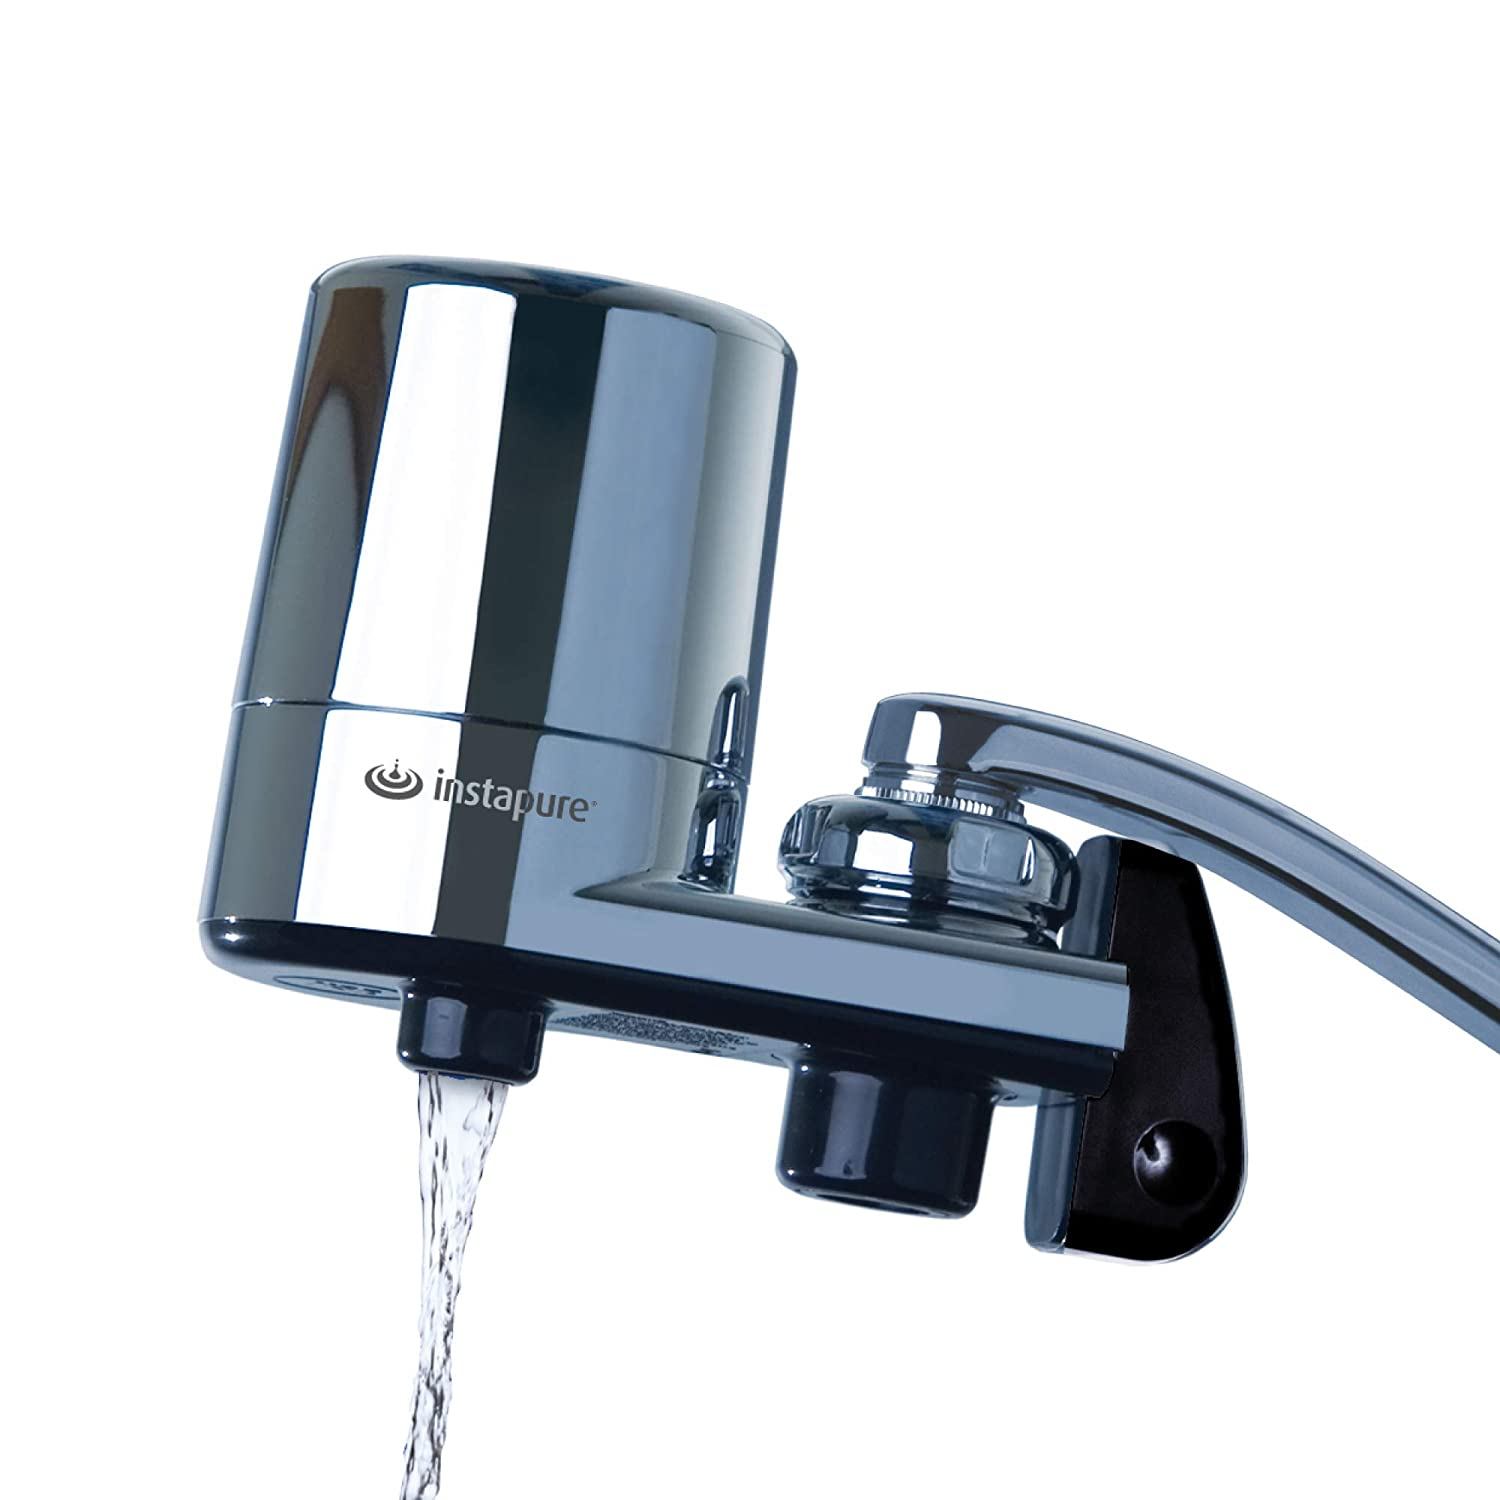 Instapure F2 Essentials Tap Water Filtration System (Chrome with Chrome Cap) + 1 Filter, Certified to ANSI/NSF 42